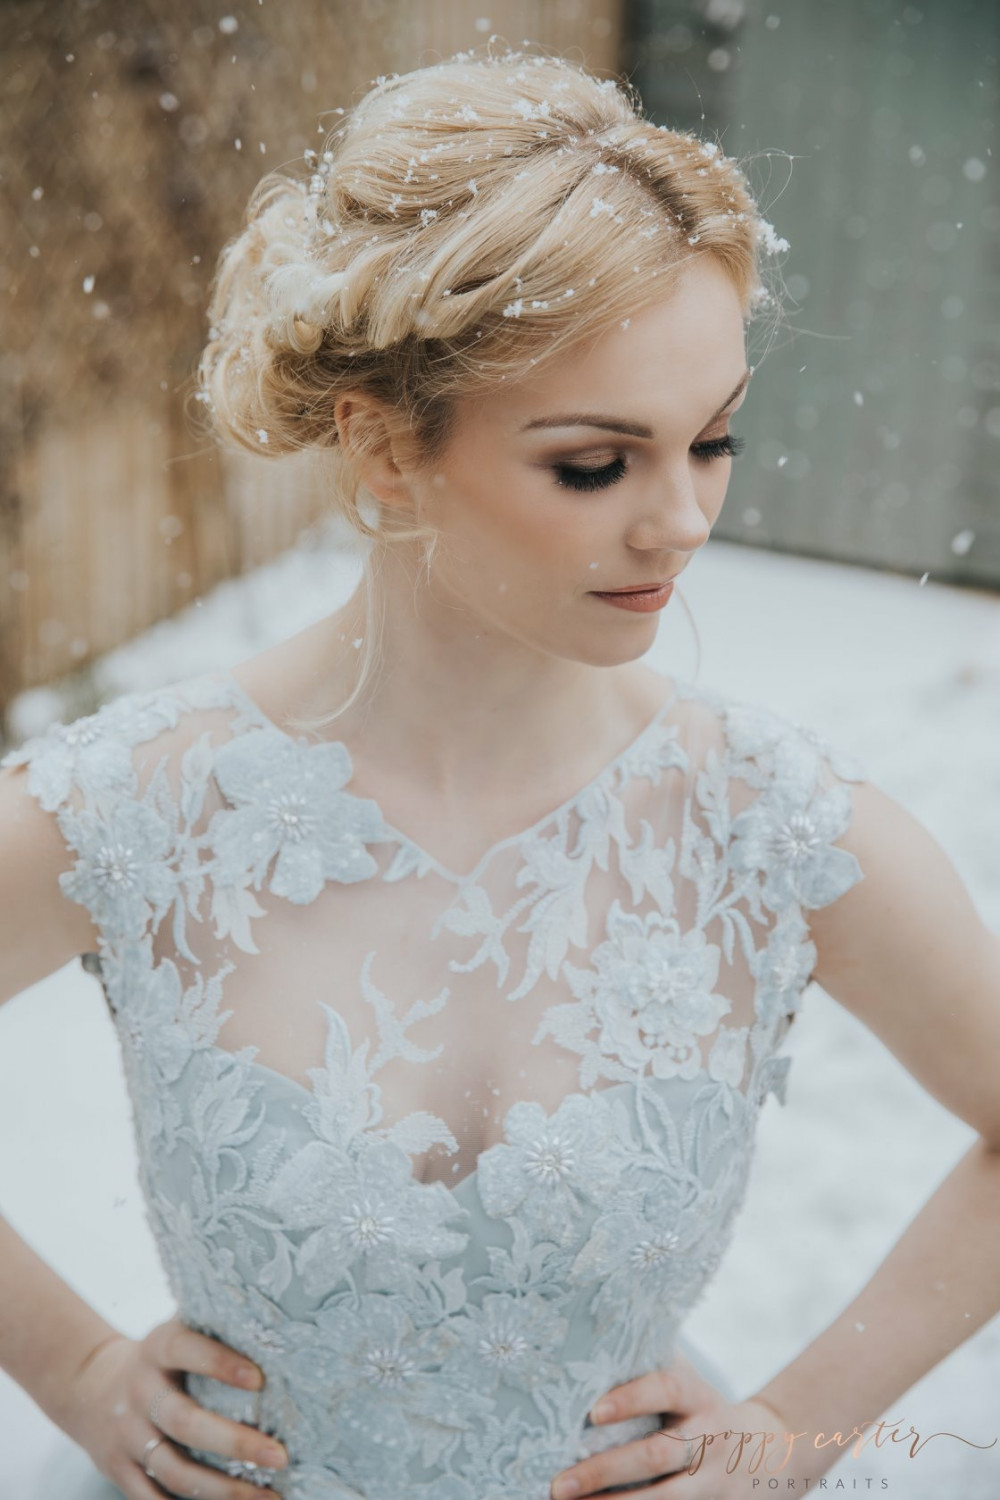 - Make Me Bridal Artist: Hair and Makeup by Jodie Elleanor. Photography by: Poppt Carter Portraits .